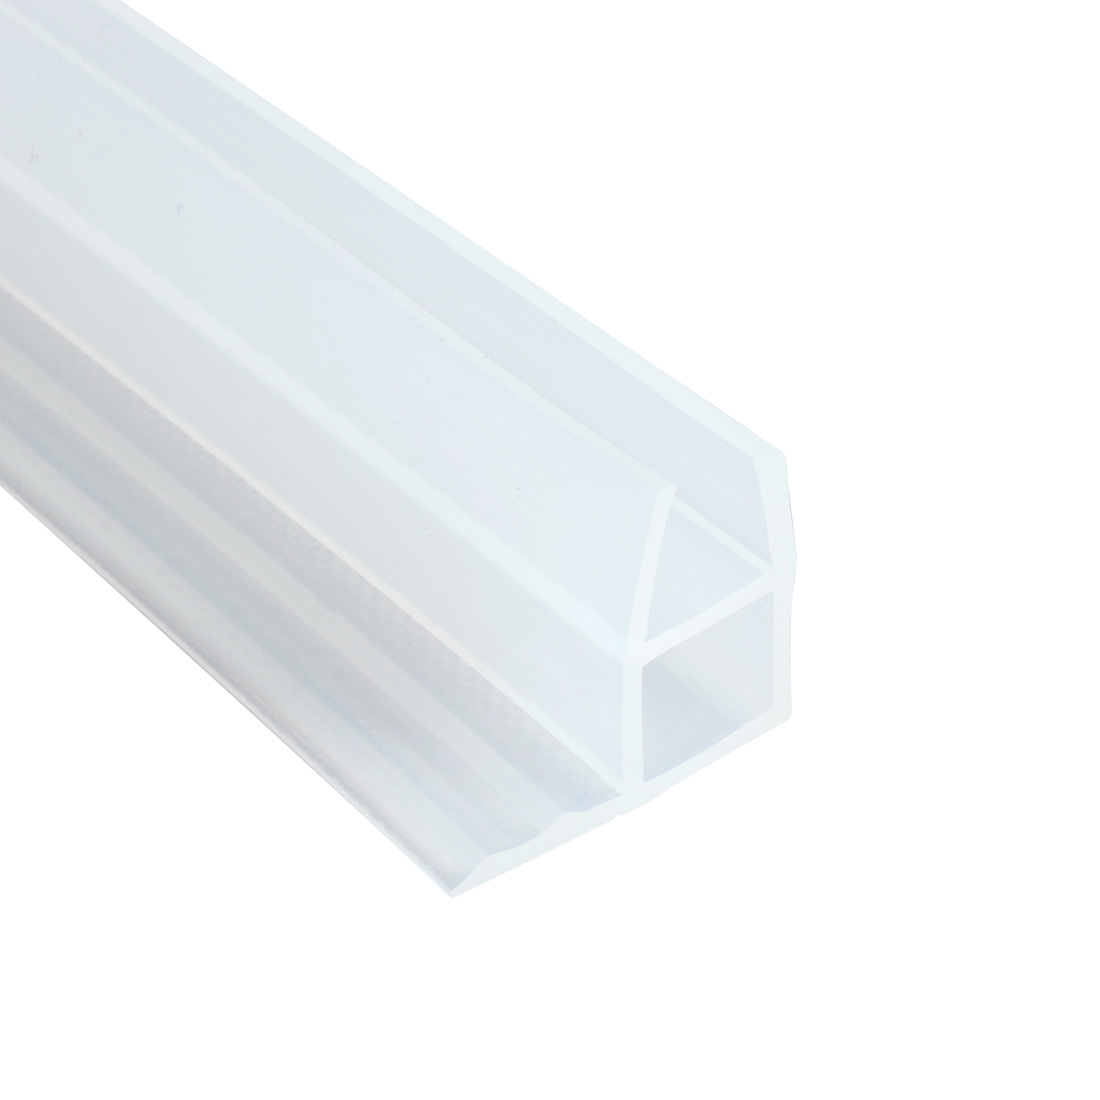 2M 78.7-inch Frameless Window Shower Door Seal Clear for 10mm 3/8-inch Glass